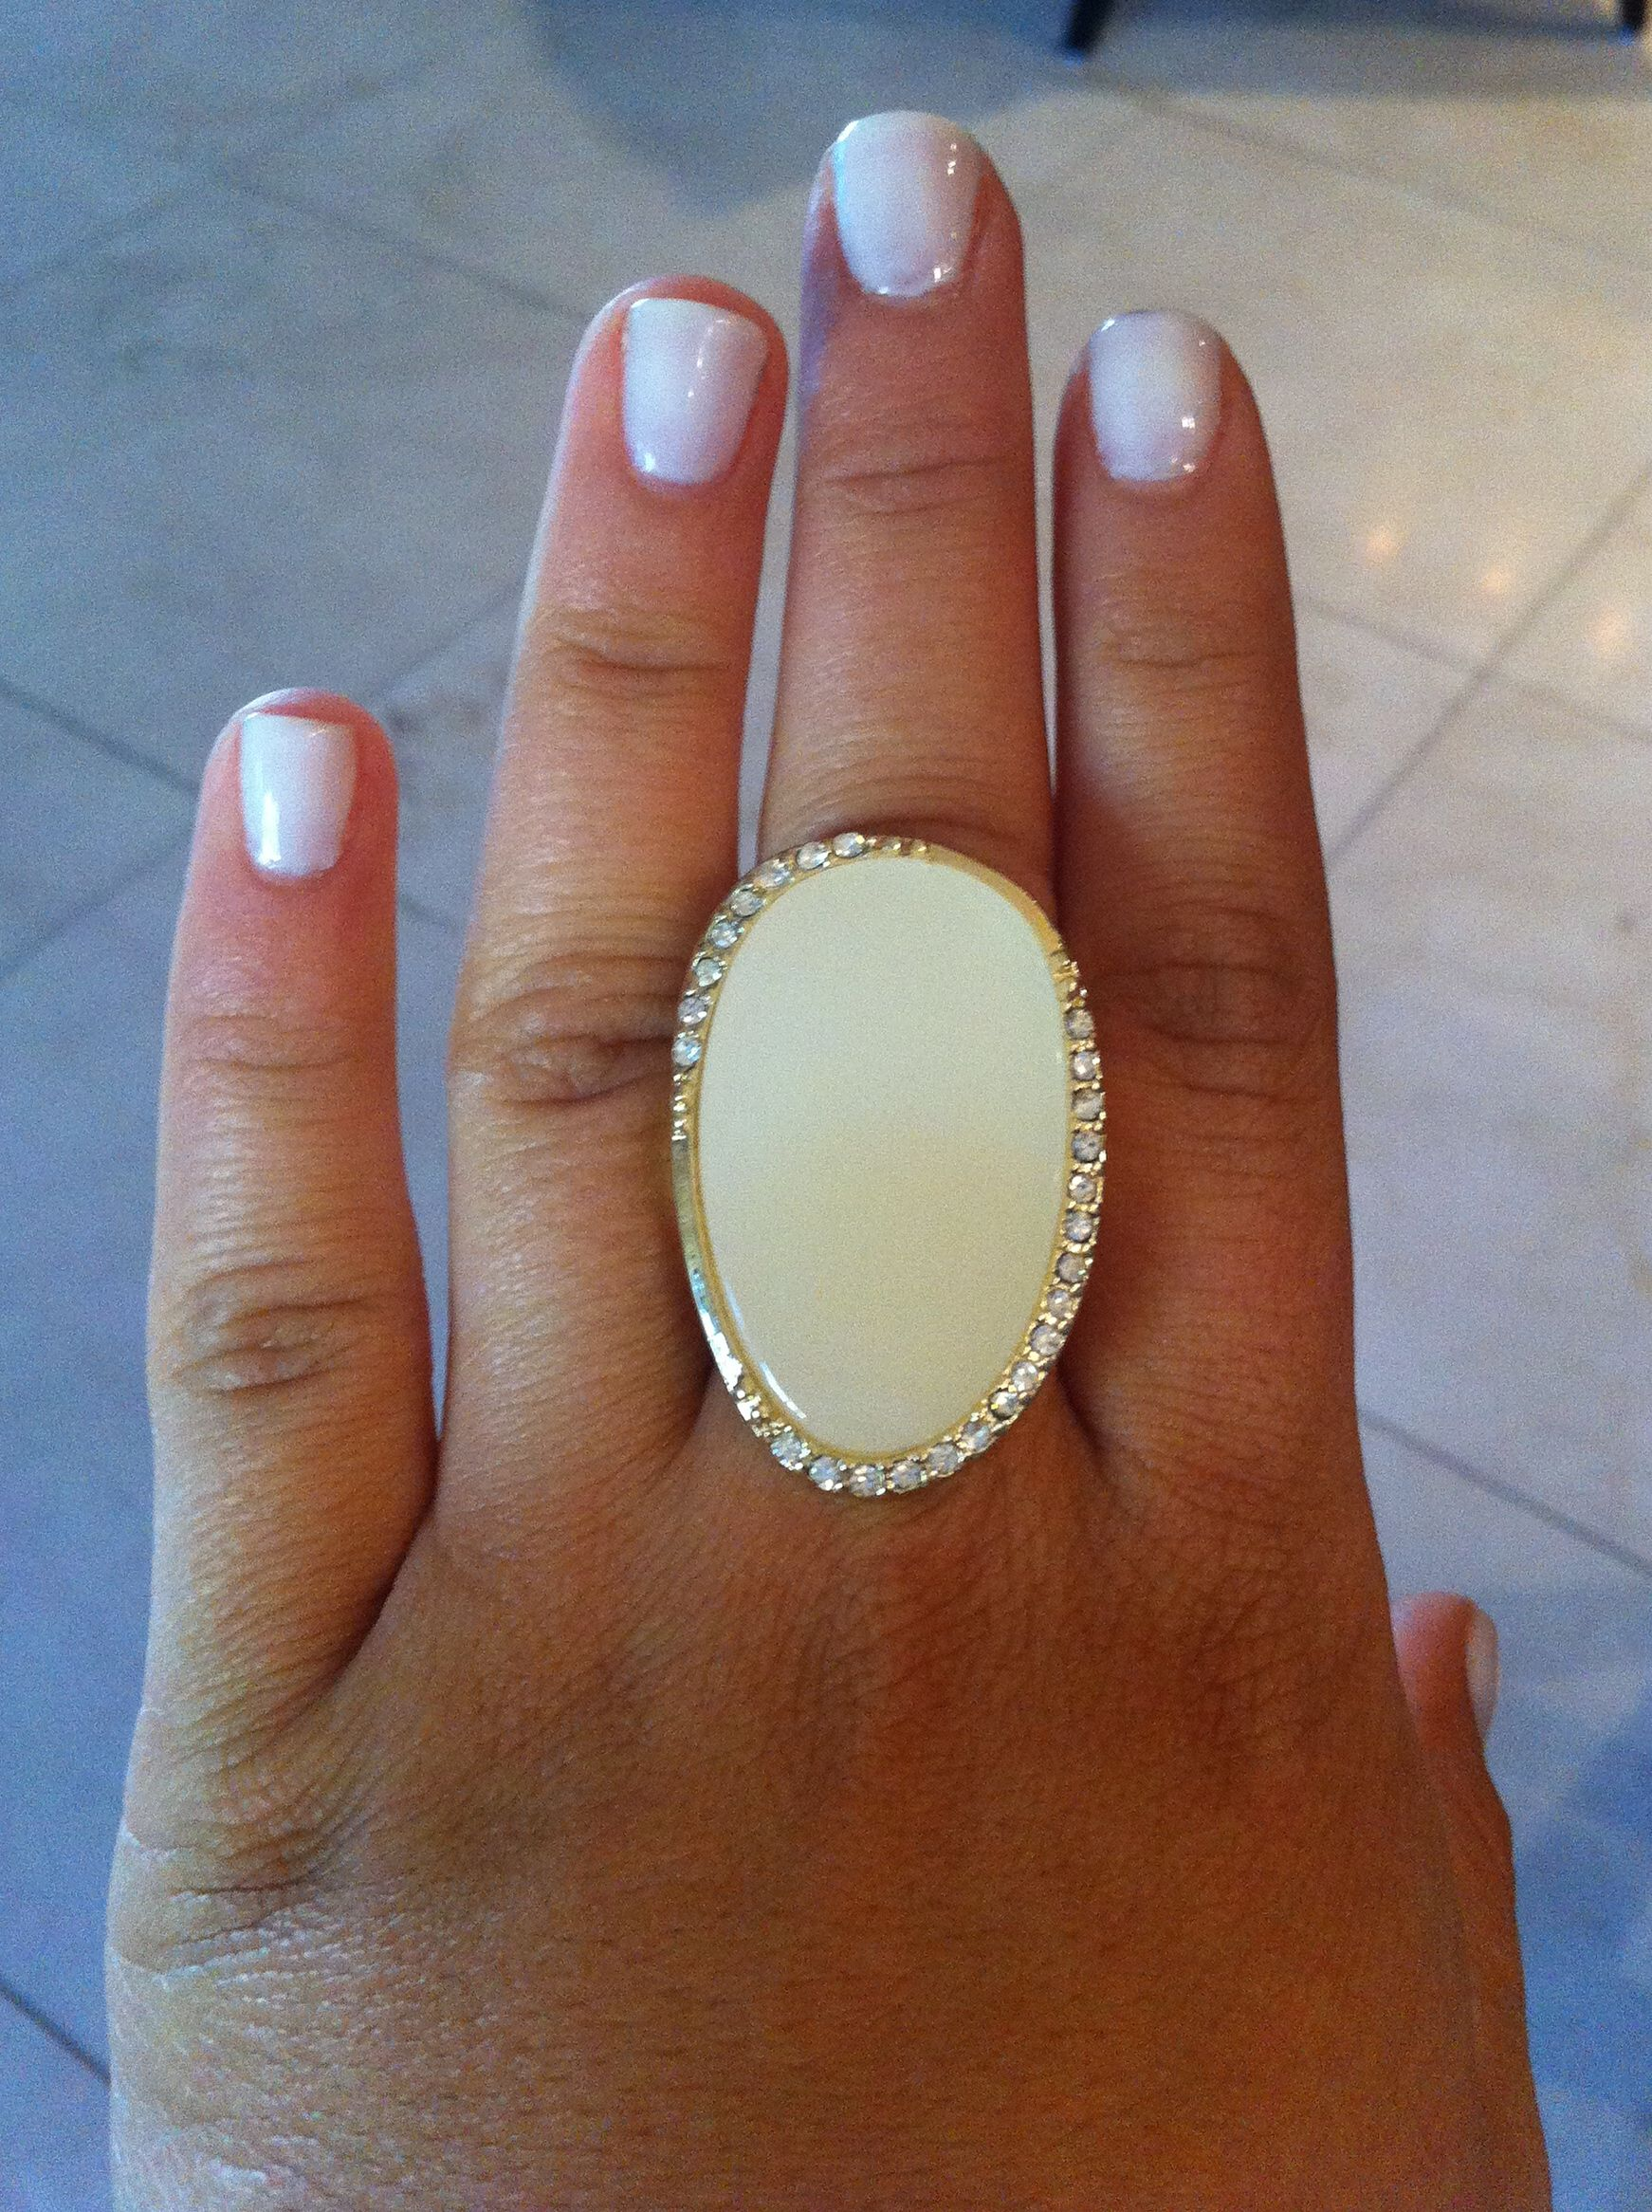 Love The Color In The Summer It Makes You Look Tan Fabulous Jewelry Nail Jewelry Jewelry